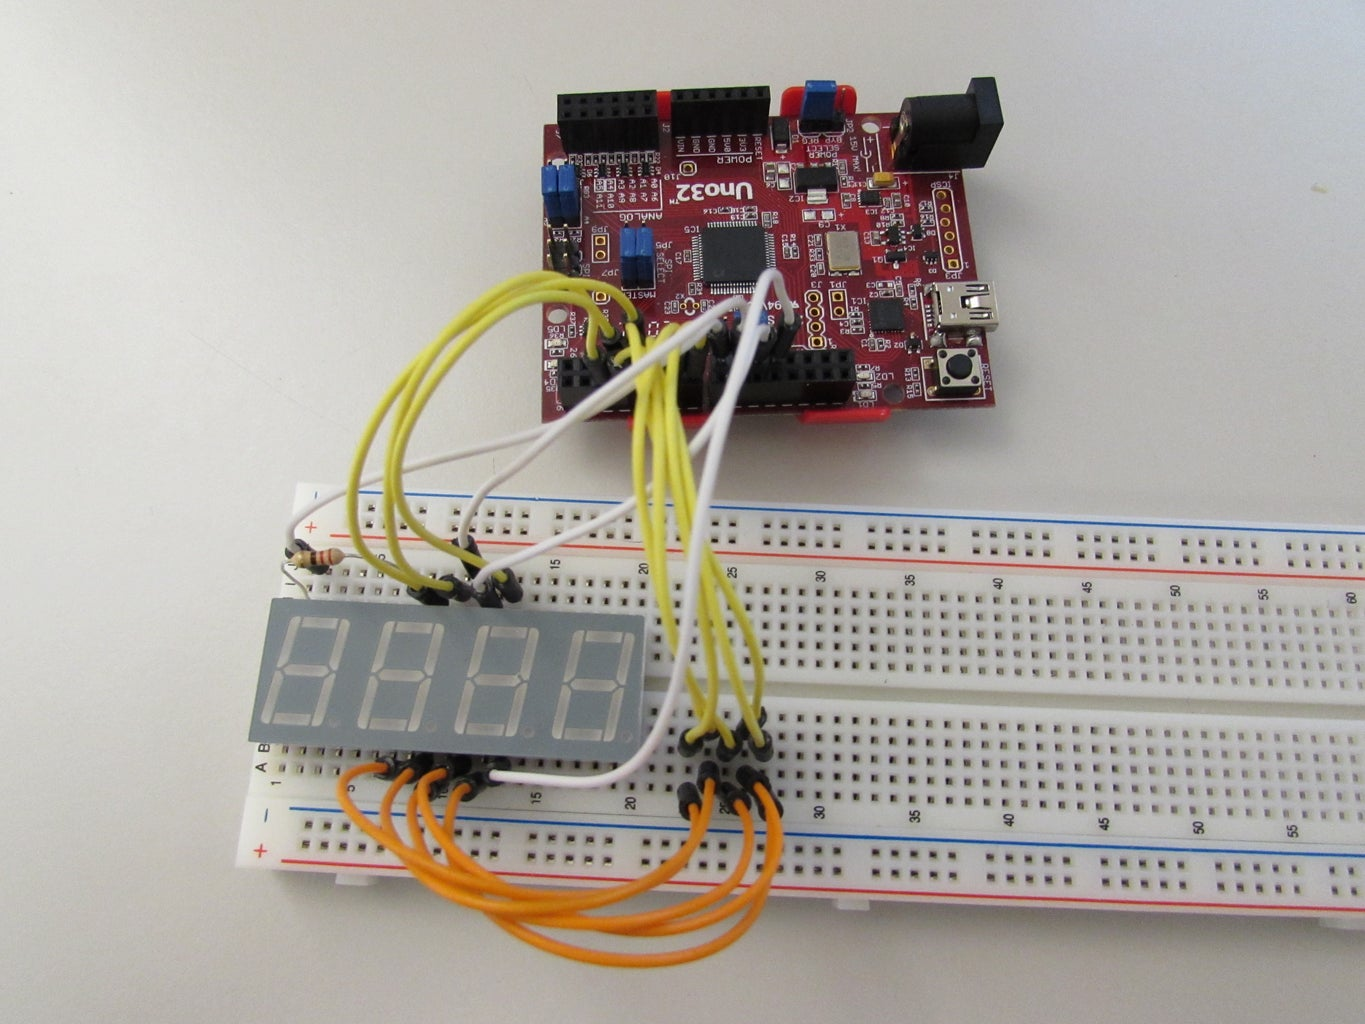 Setting Up the Circuit- the 7 Segment Display